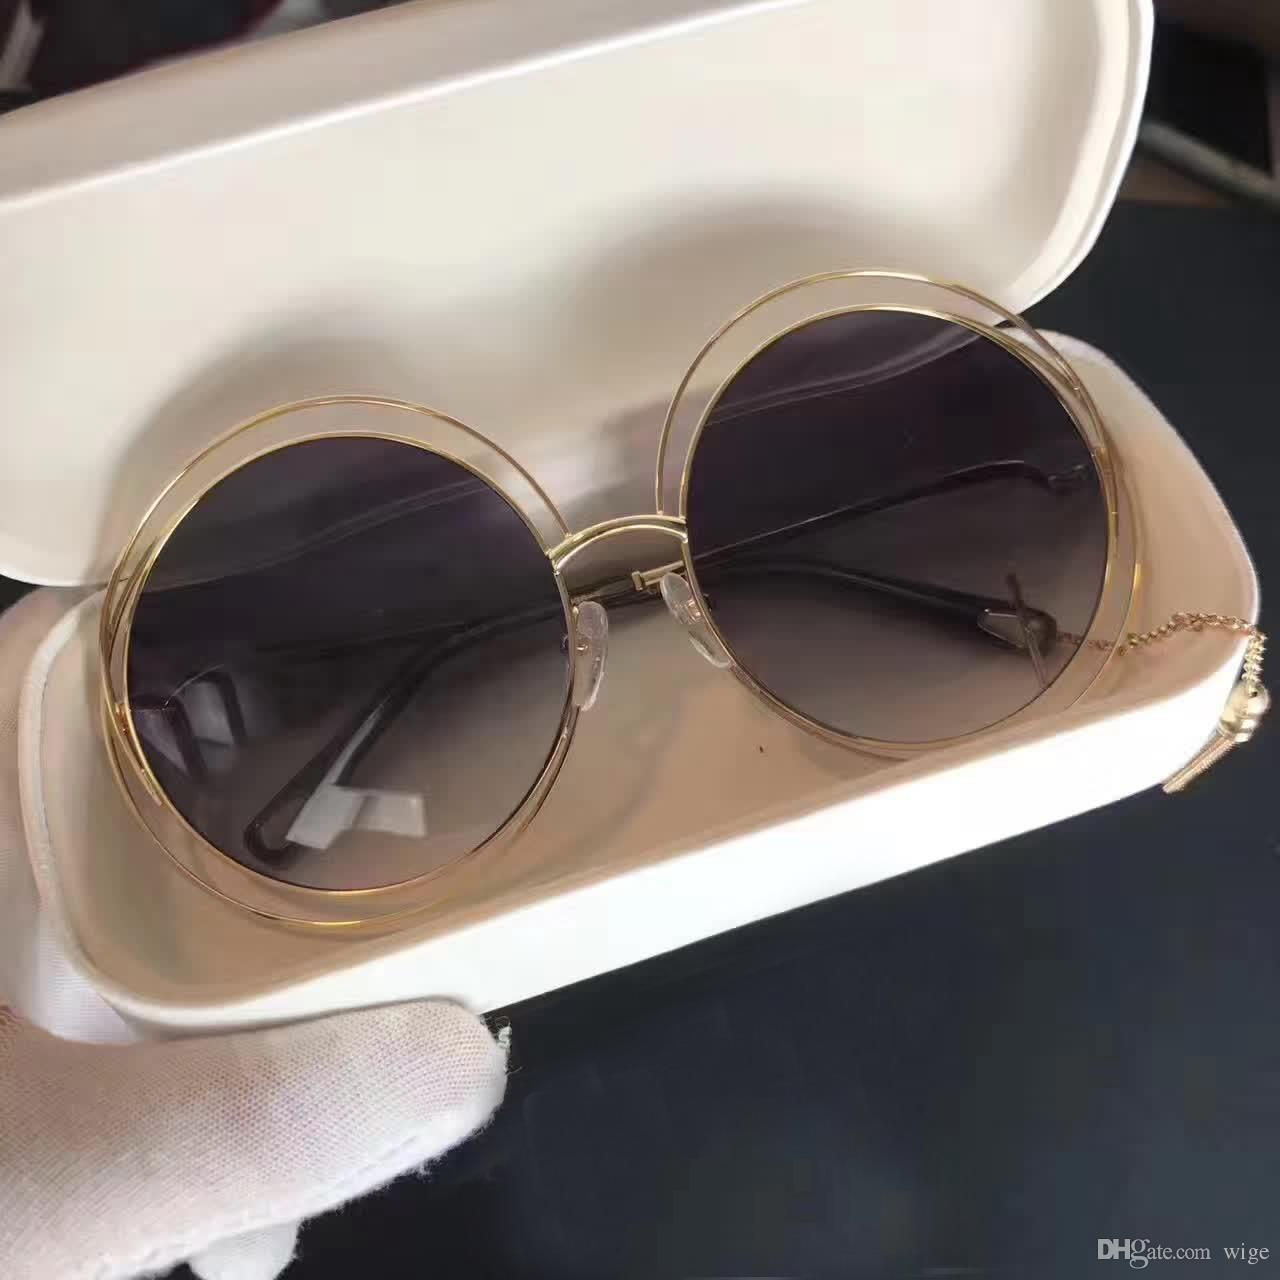 f32869b9f59 Women Designer Round CE 138S Sunglasses Gold Transparent Light Grey Brand  Sunglasses Oculos De Sol Feminino New With Box Tifosi Sunglasses Cheap  Eyeglasses ...